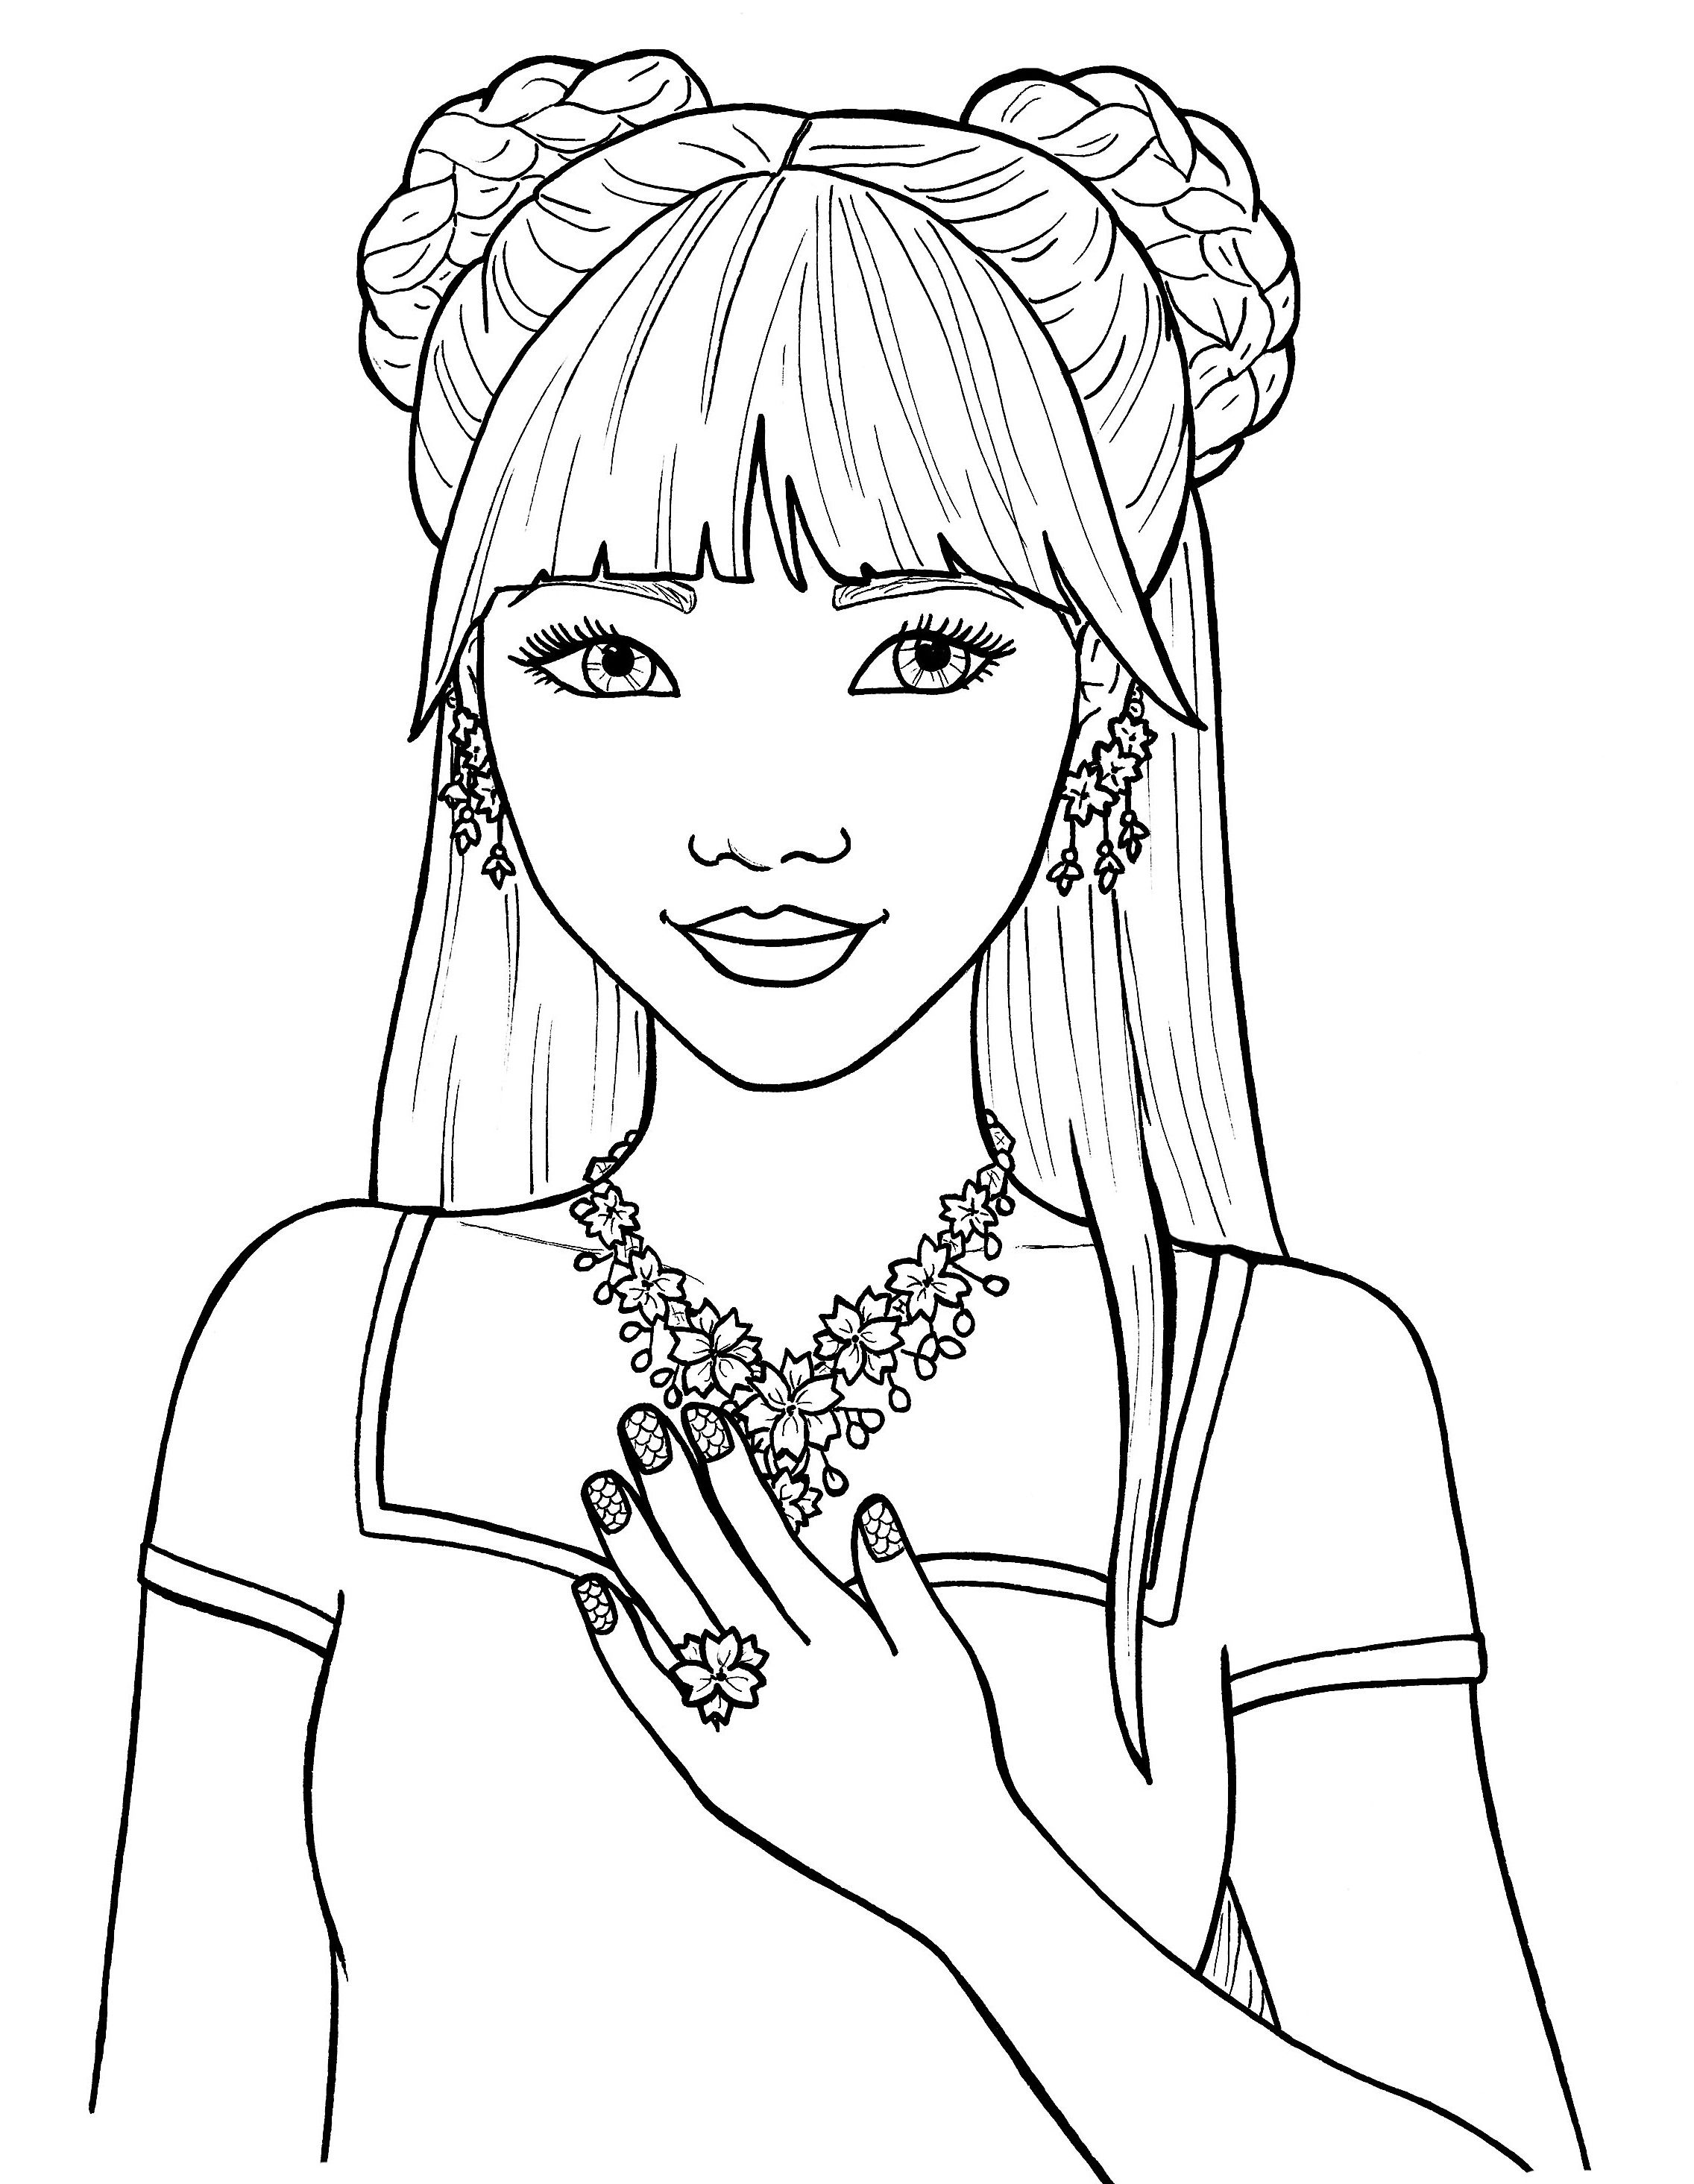 Pretty Girls Coloring Pages Free Printable Coloring Pages People Coloring Pages Cute Coloring Pages Coloring Pages For Girls